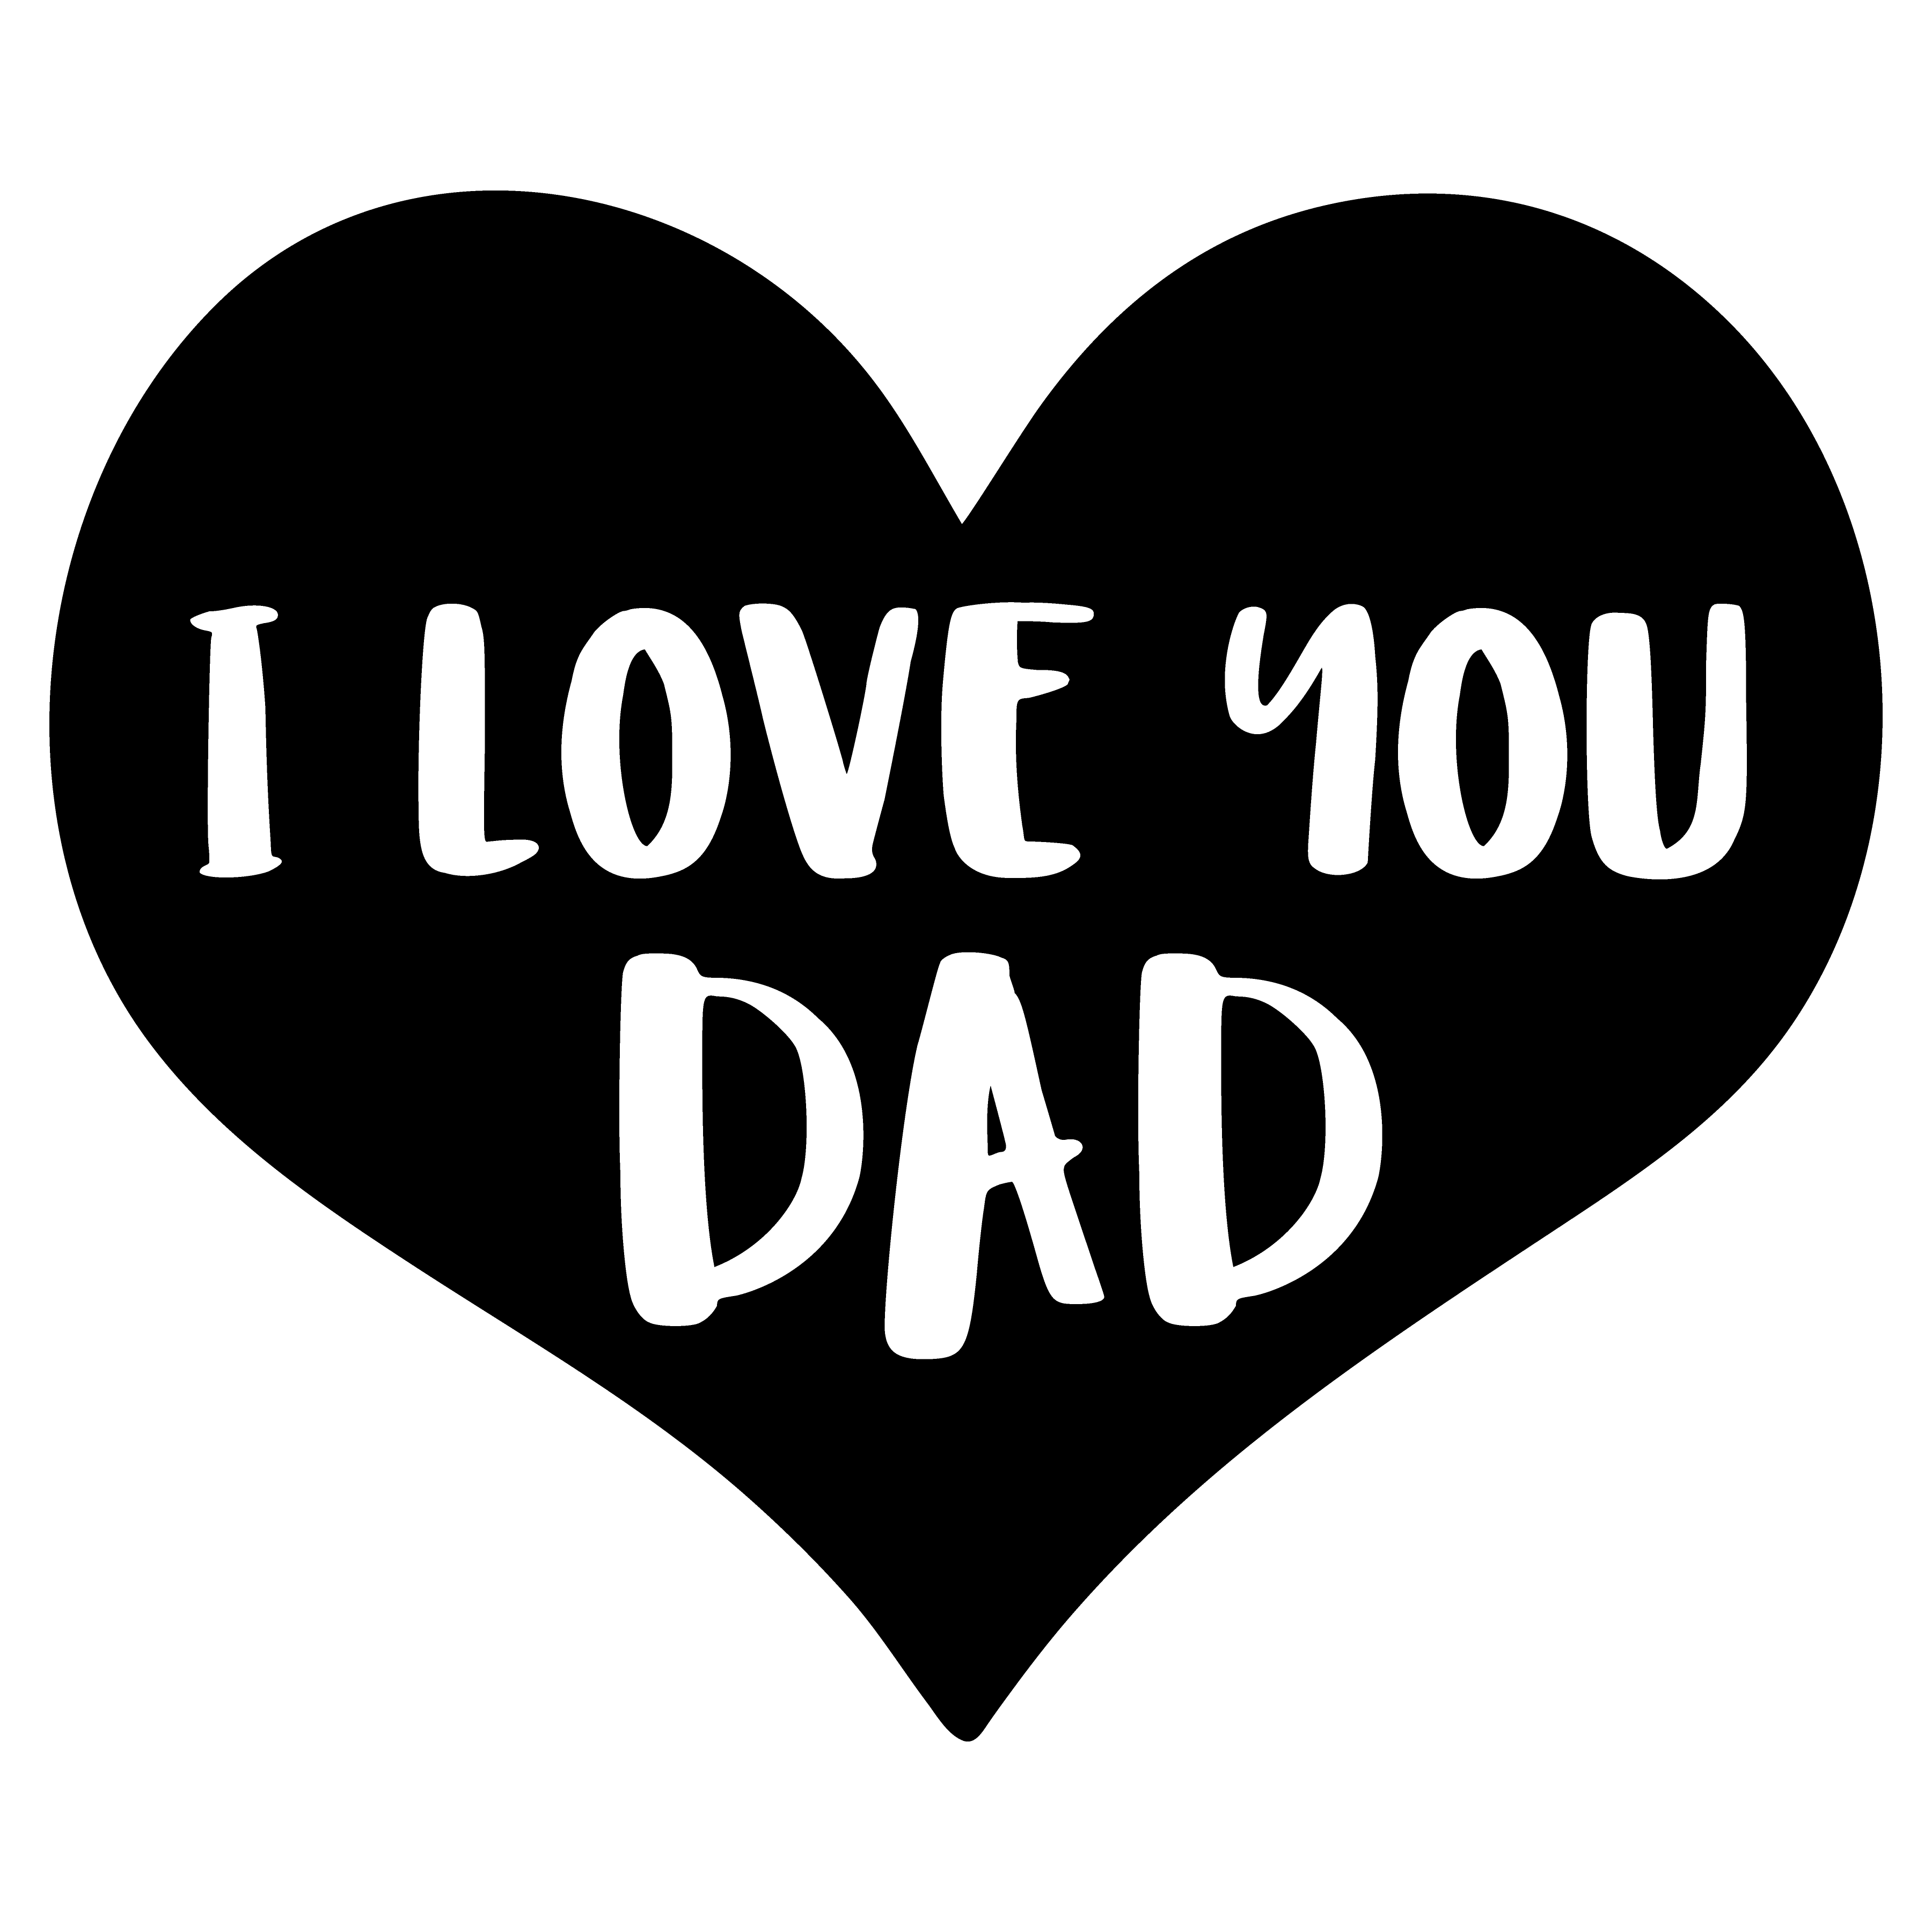 clipart stock Fathers clipart love you dad. Father transparent